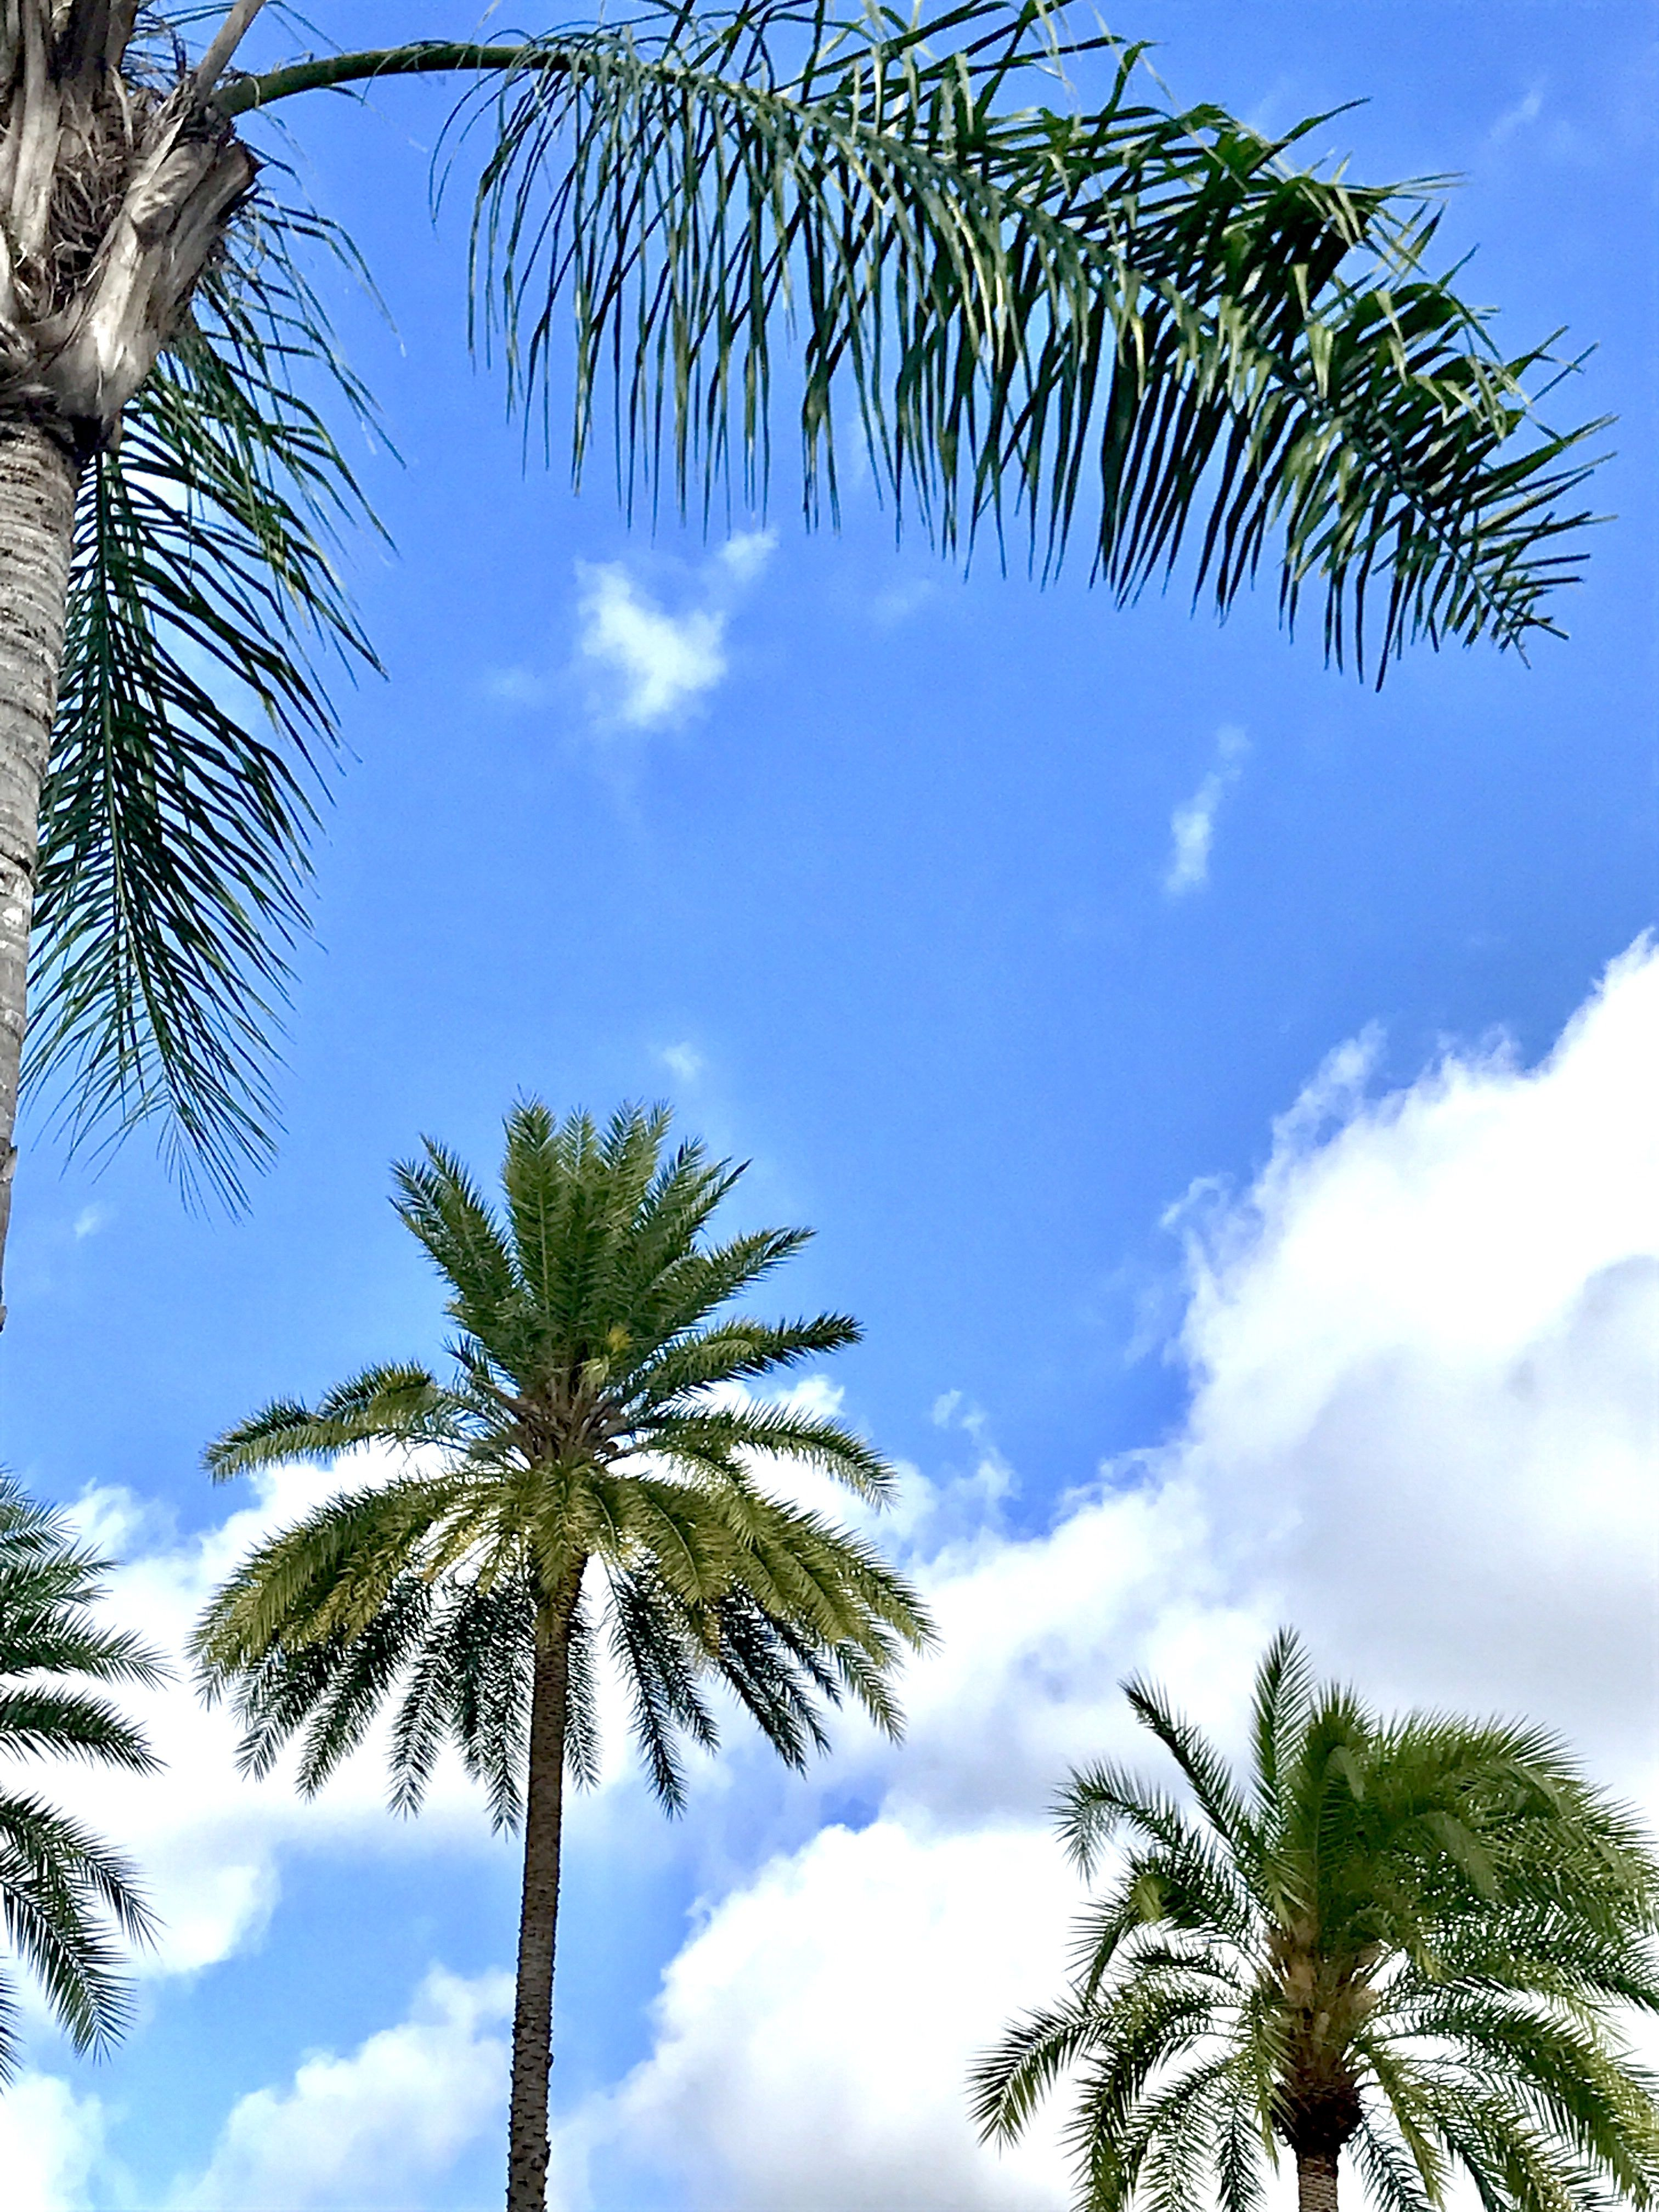 Palm trees in Winter Park Florida